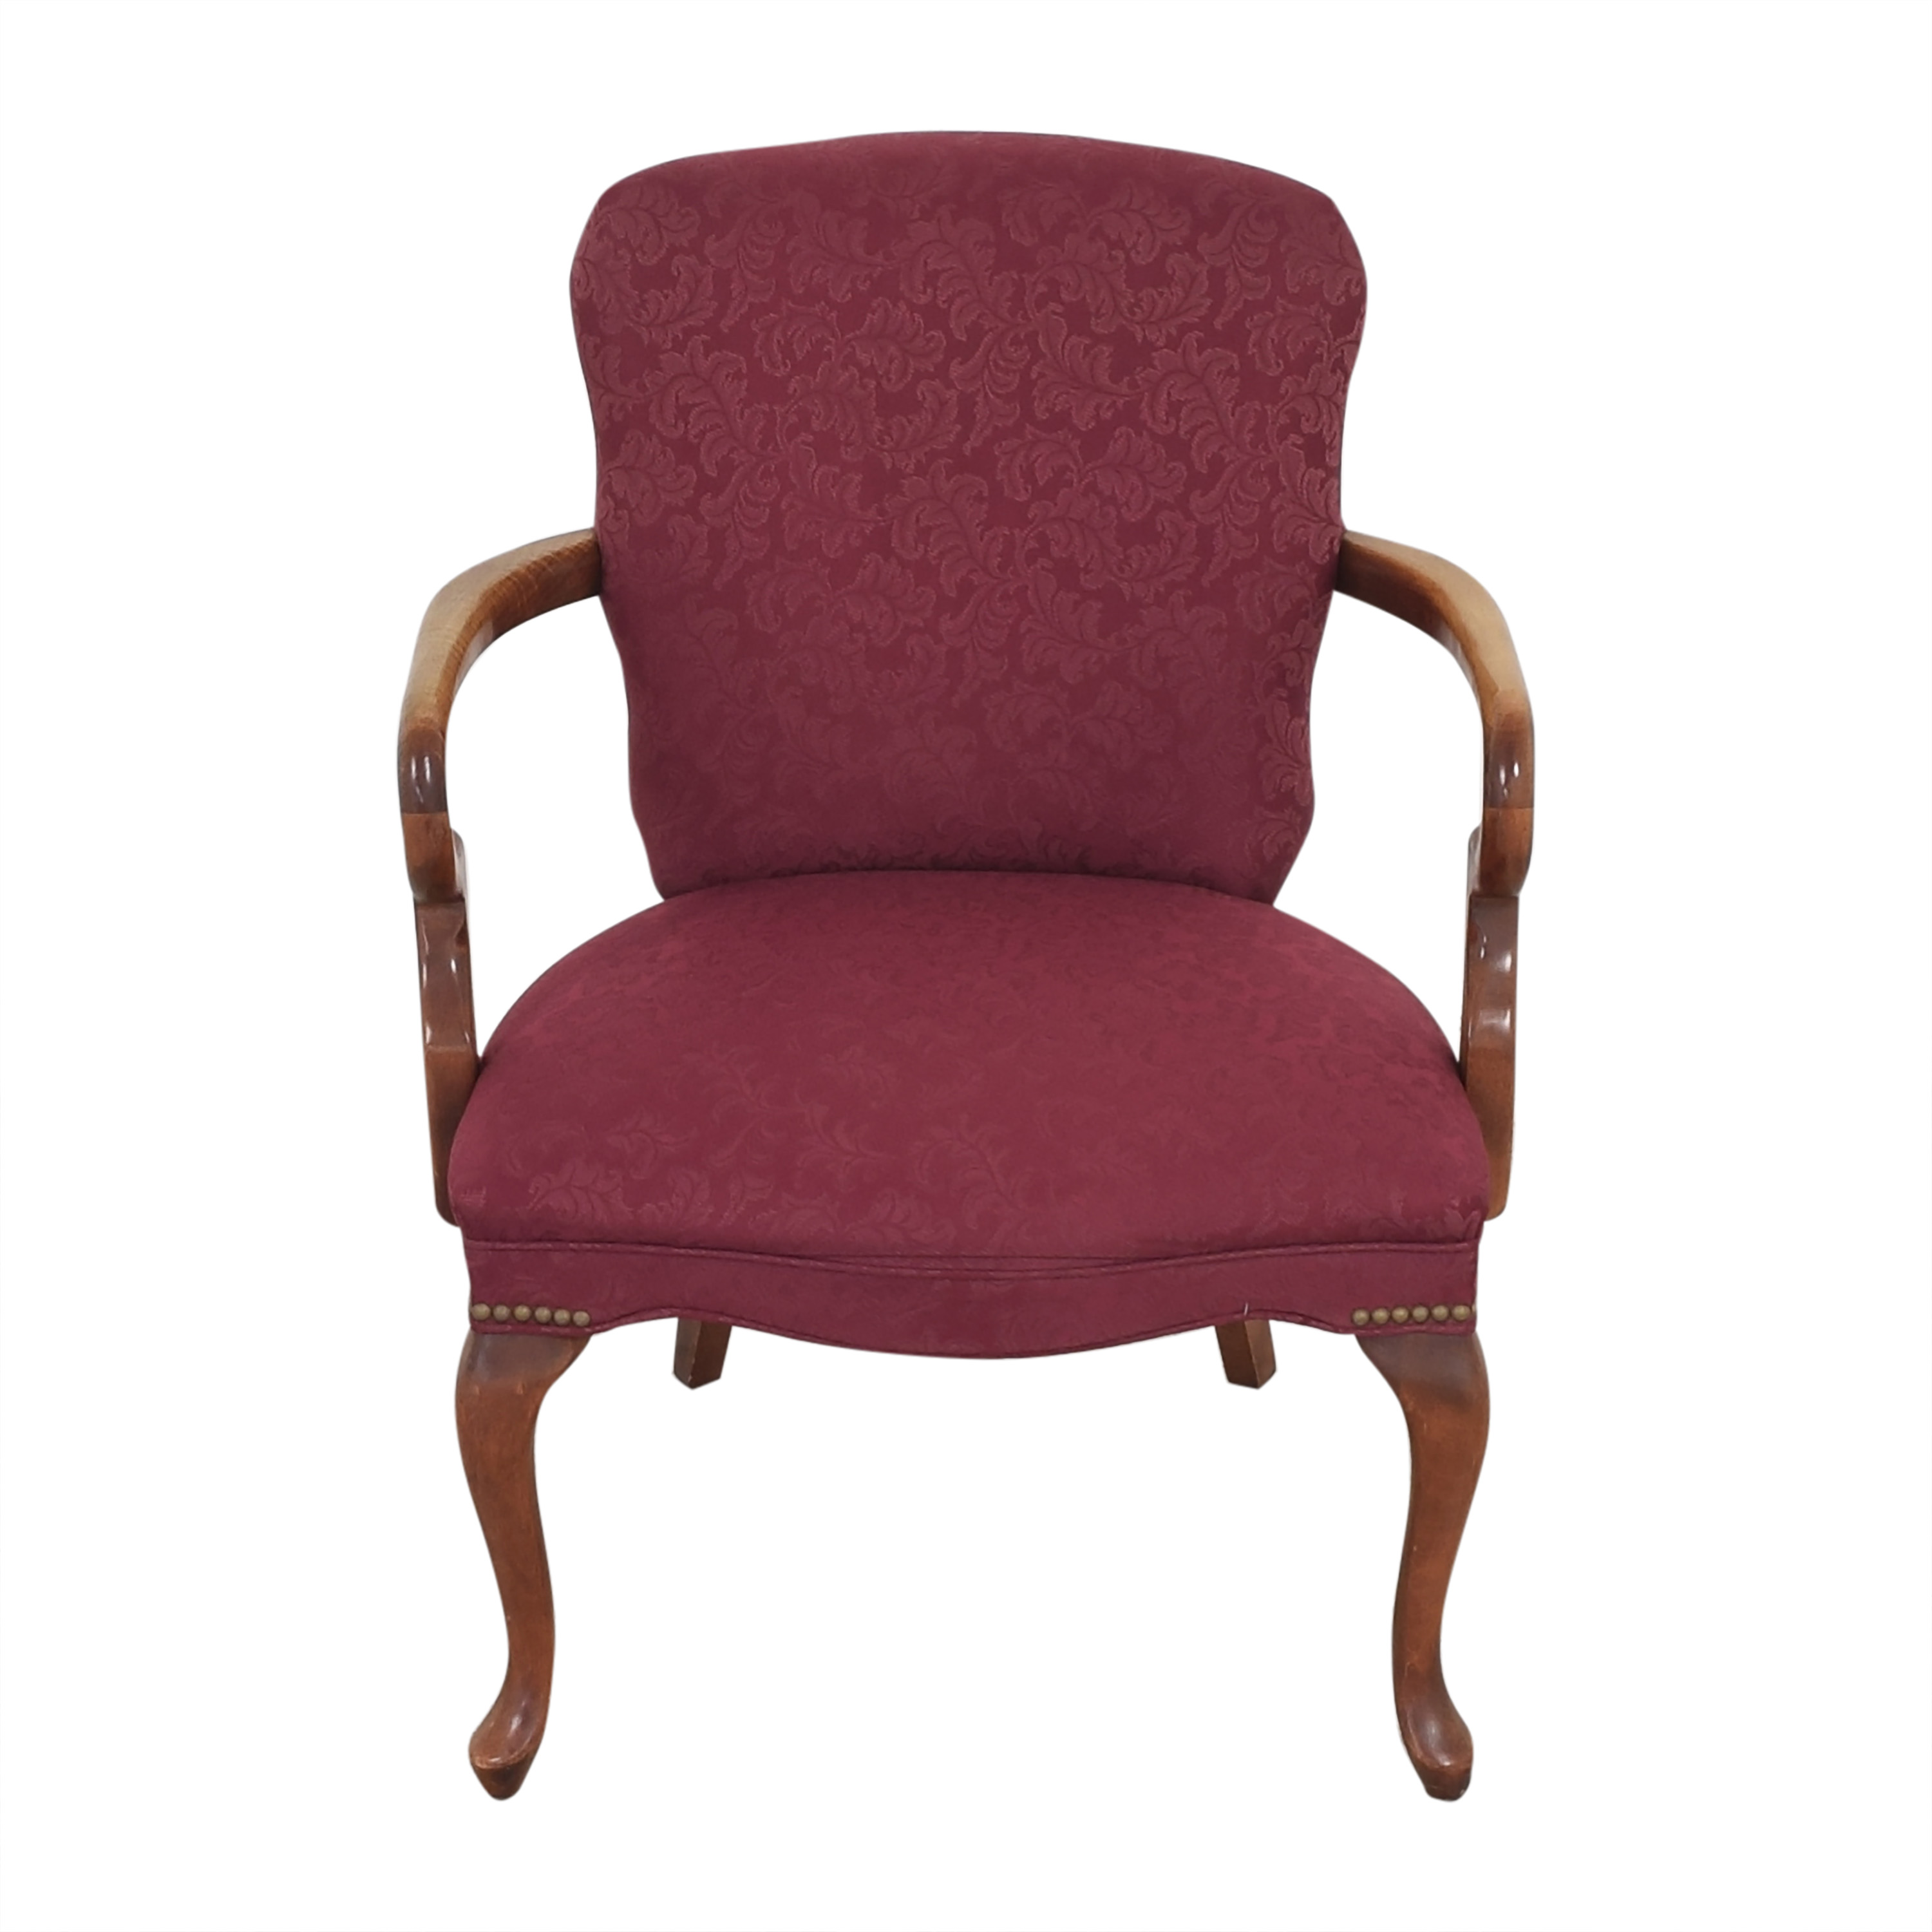 shop Ethan Allen Accent Chair Ethan Allen Accent Chairs